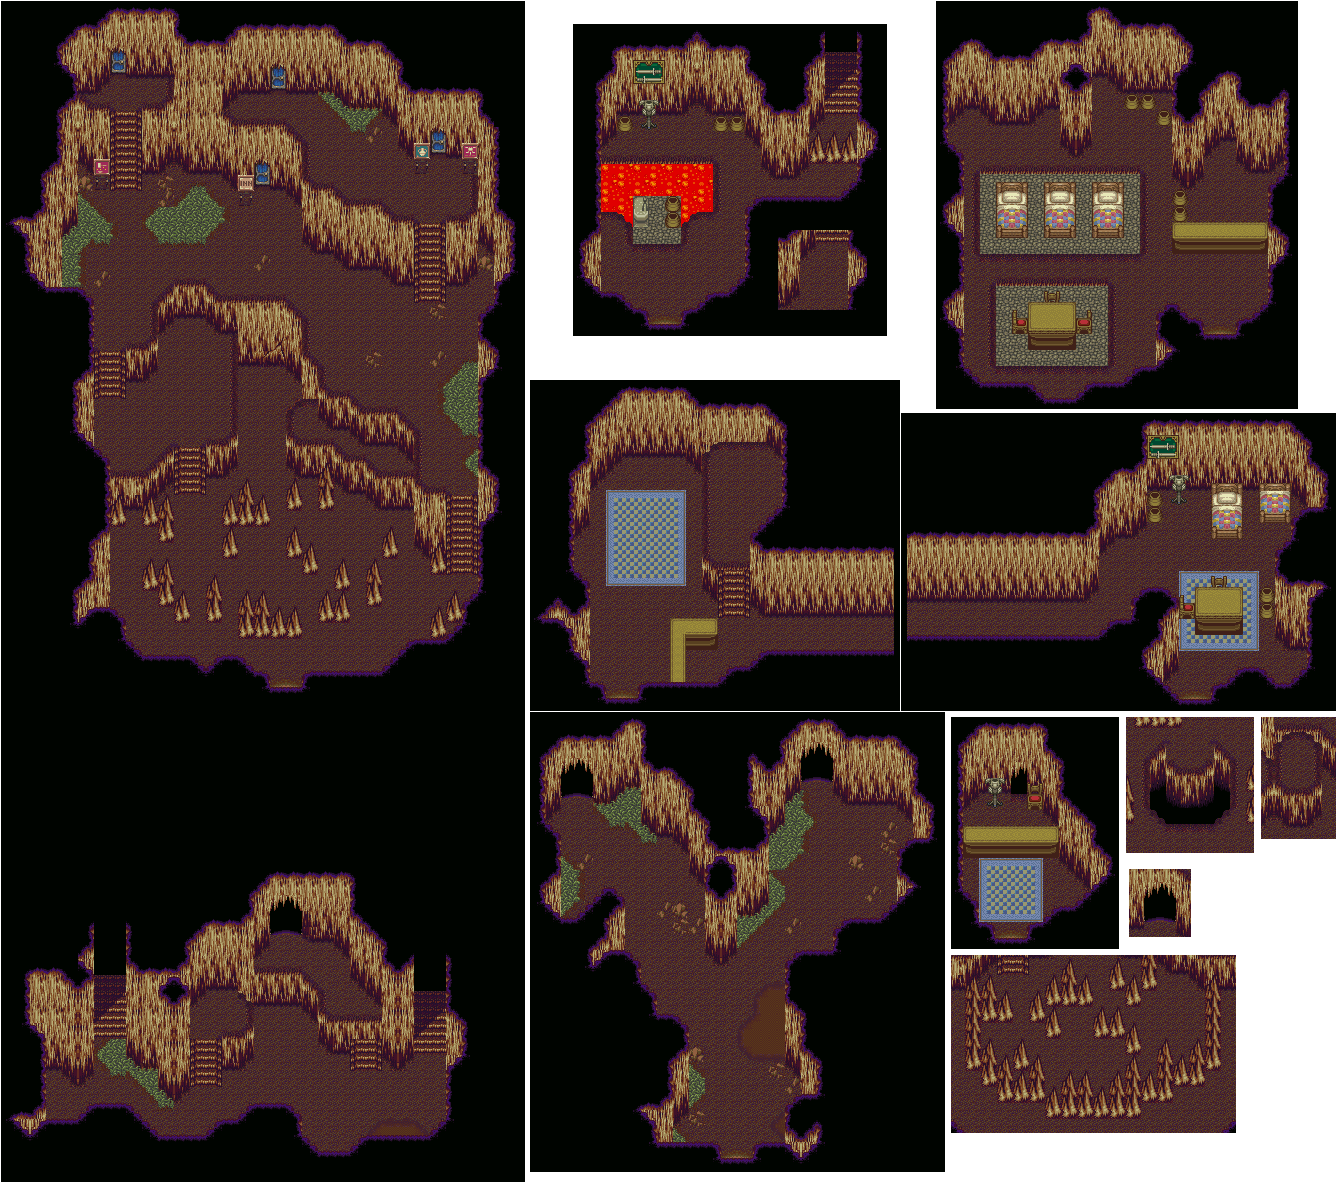 Dwarf Village (Secret of Mana)